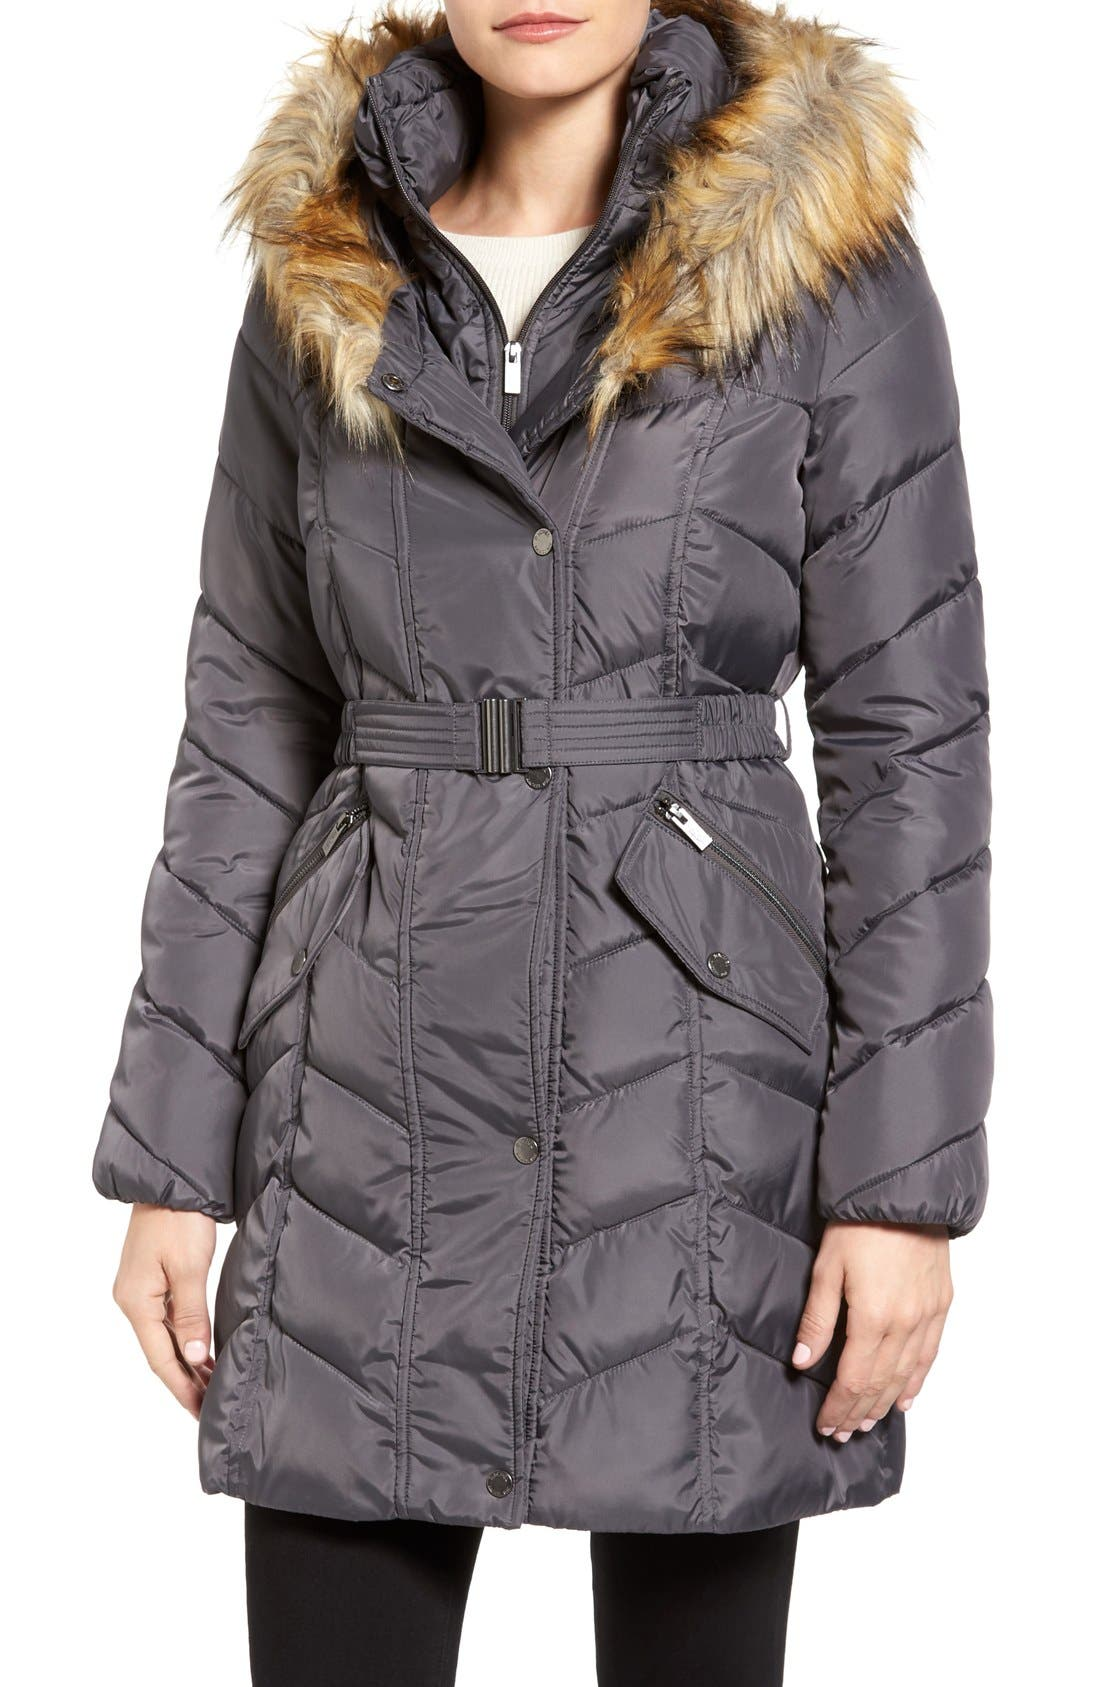 Alternate Image 1 Selected - Rachel Roy Faux Fur Trim Quilted Coat with Bib